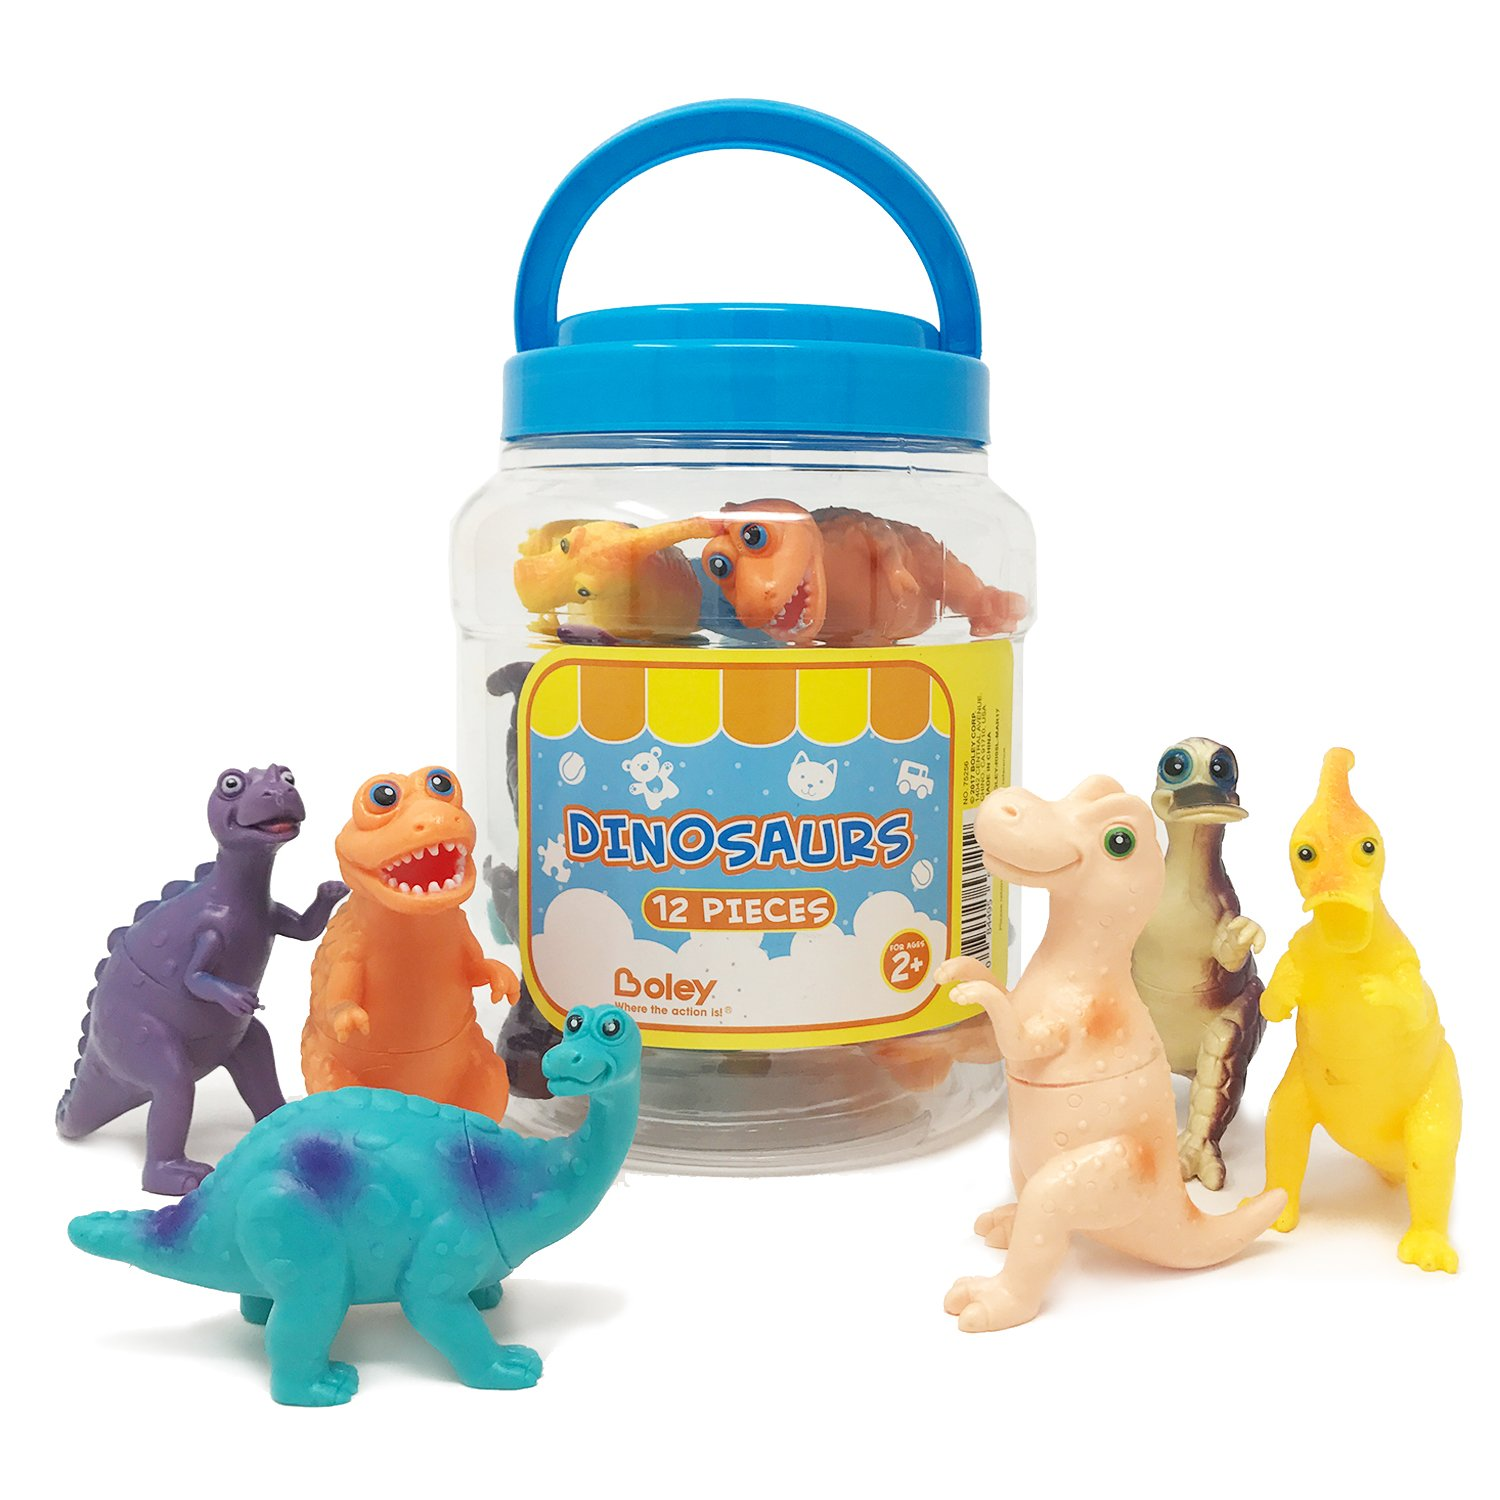 Amazon Boley Educational Toys For Kids And Toddlers 12pc Toy Dinosaur Figures Inc Including T Rex Brontosaurus Etc Great Gift Set